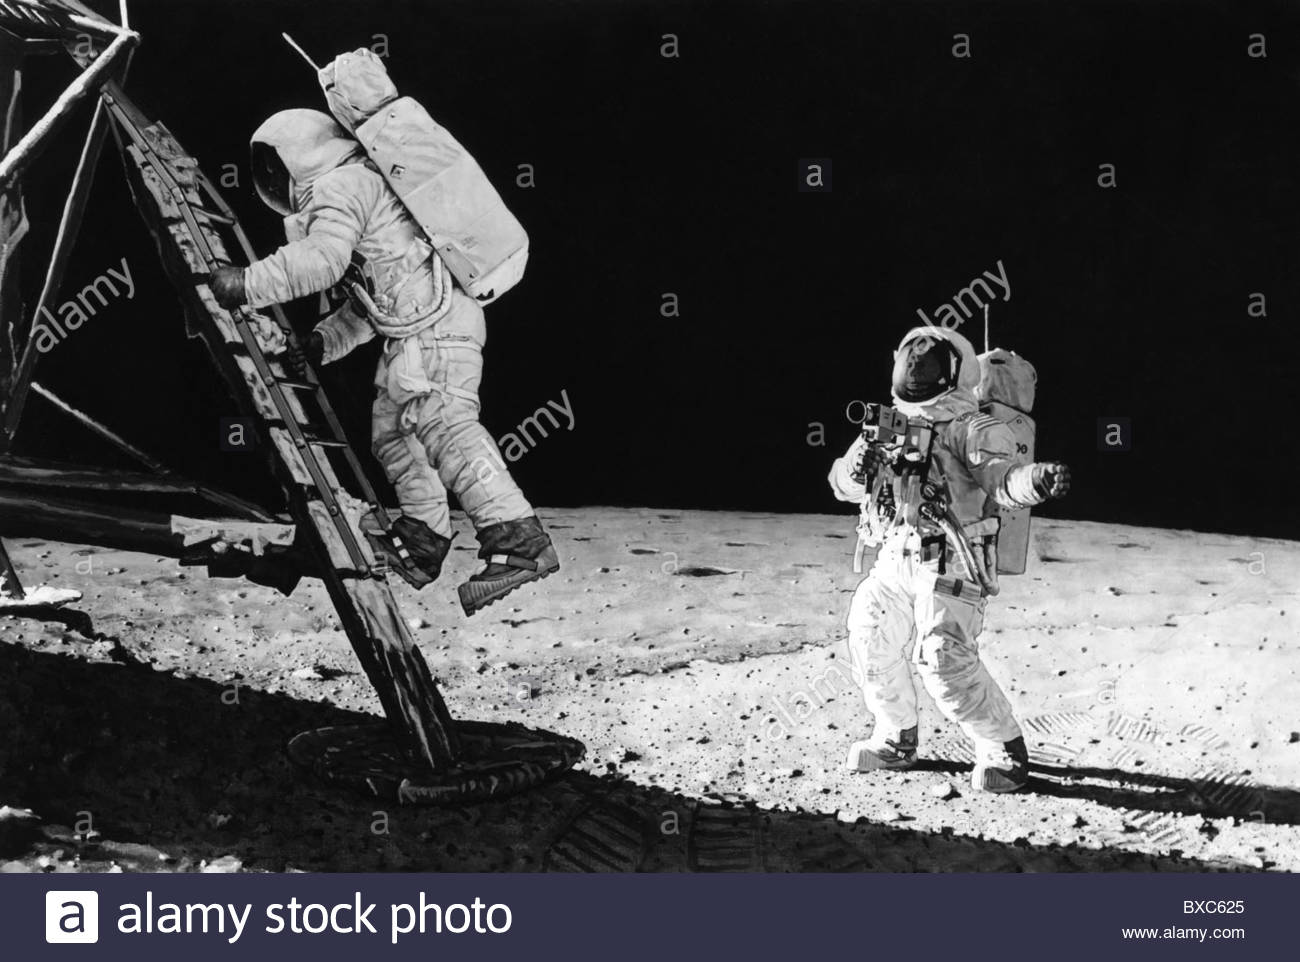 space apollo mission astronauts - photo #18